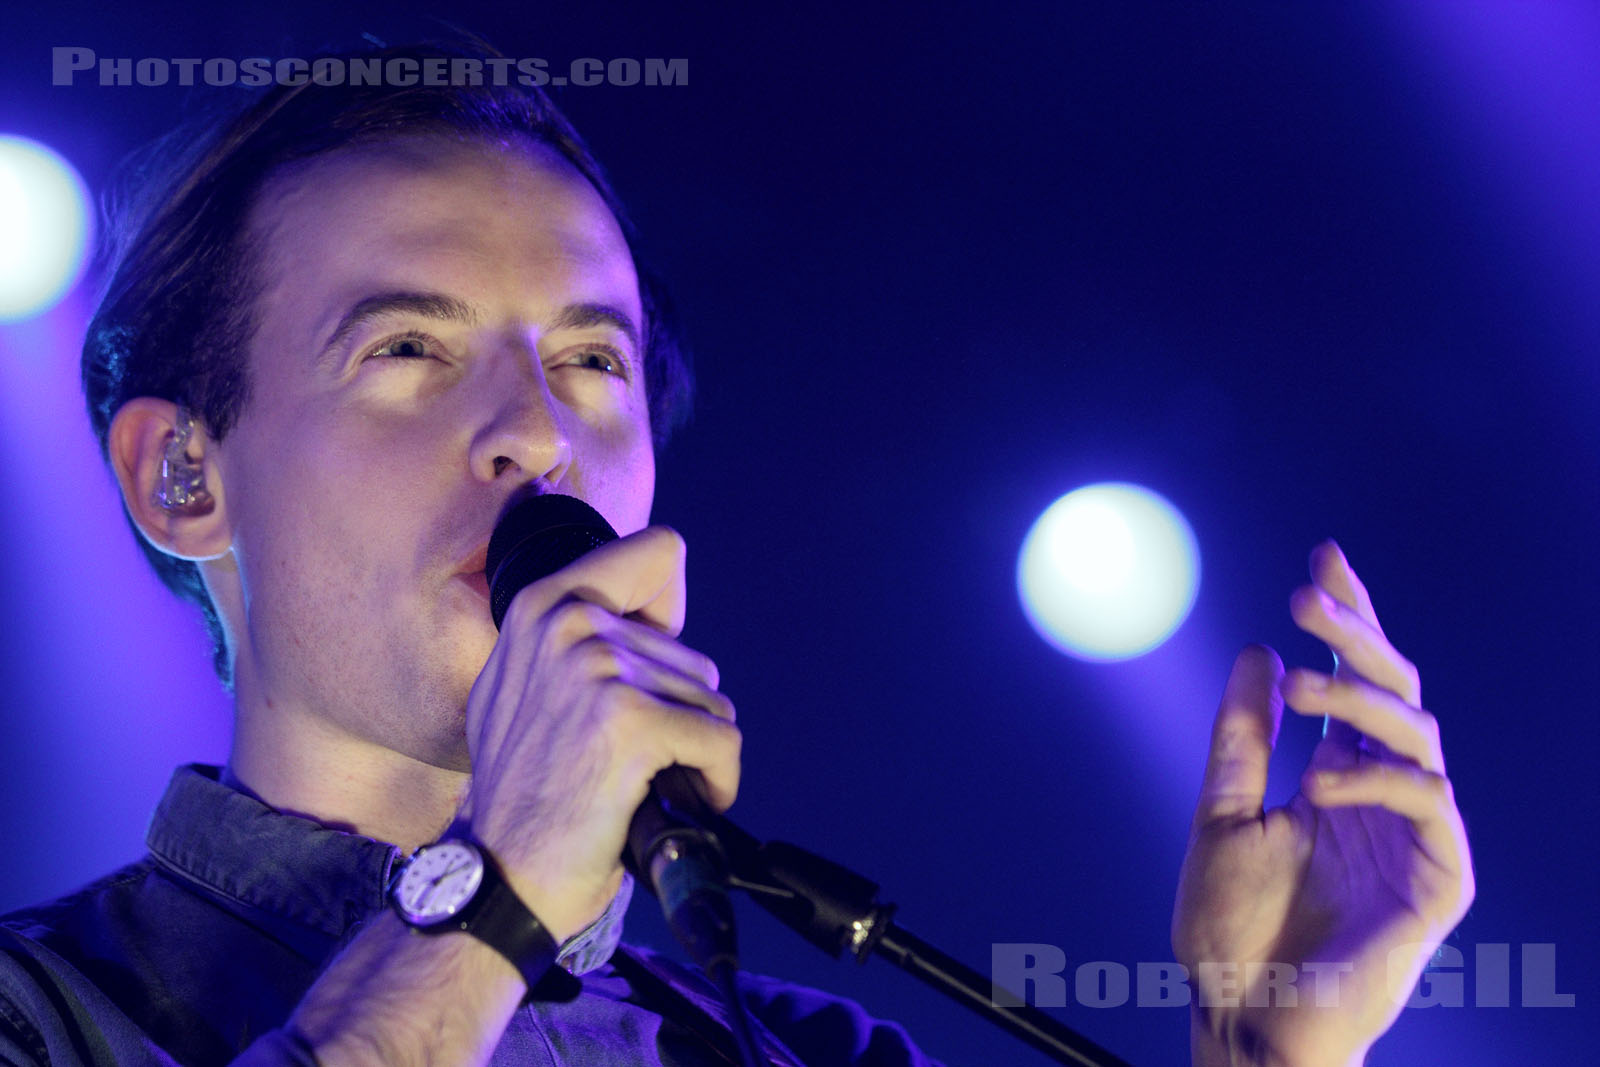 BOMBAY BICYCLE CLUB - 2014-11-25 - PARIS - Le Bataclan